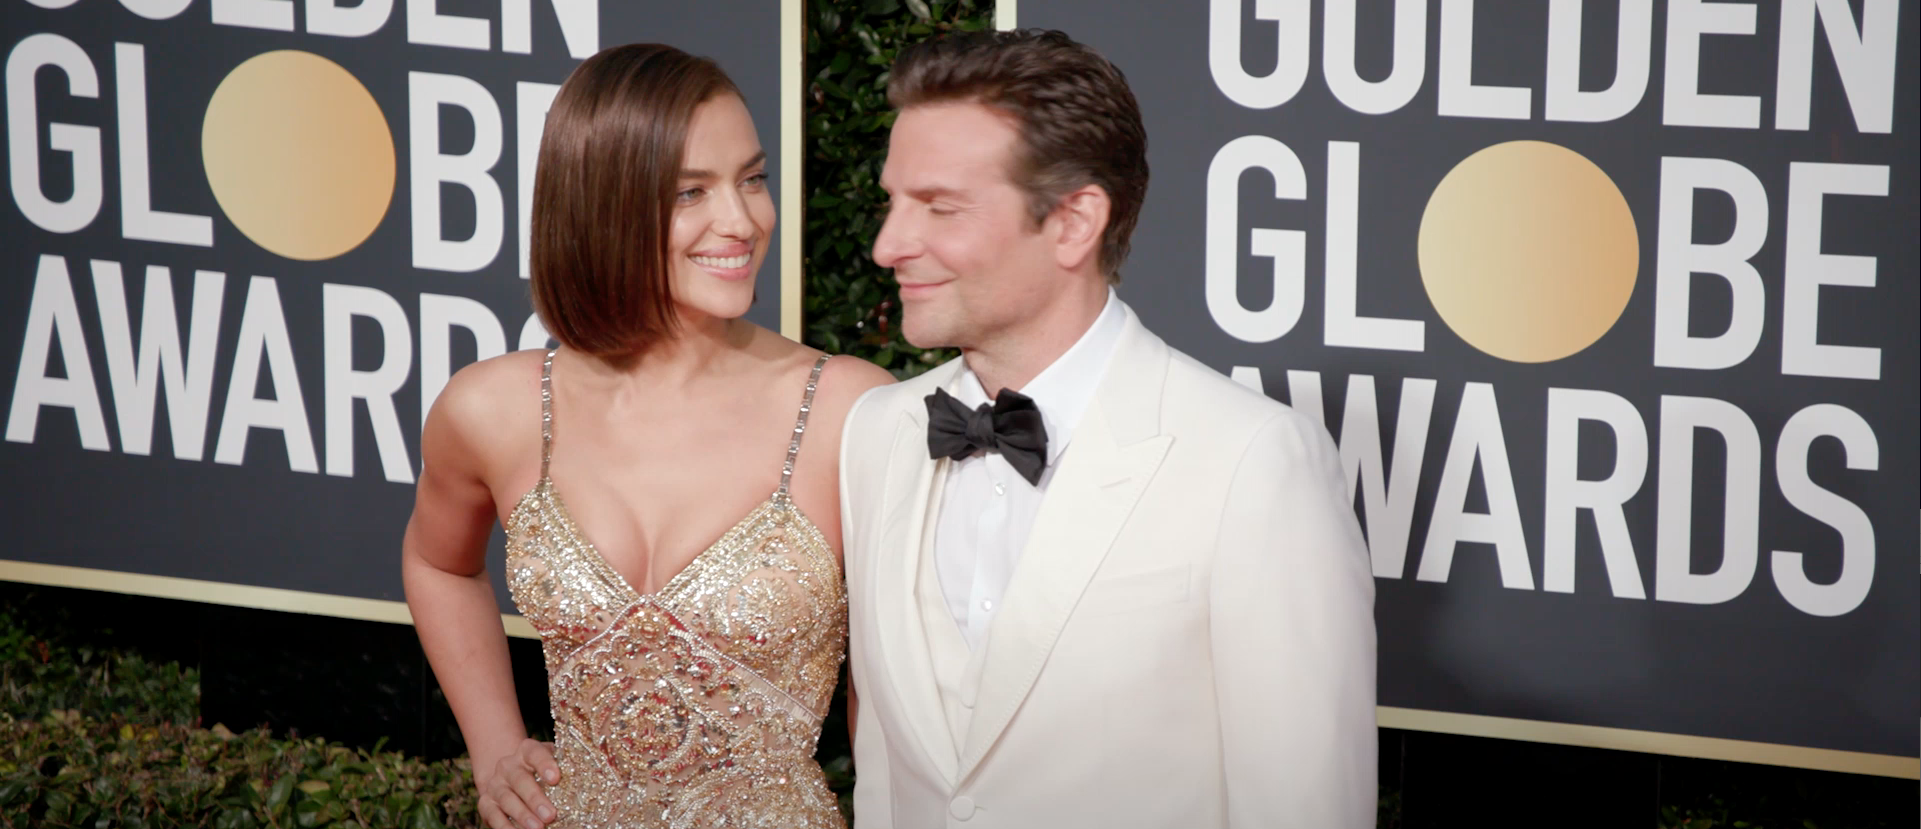 Bradley Cooper and Irina Shayk Agreed to Live in Same City as Part of Custody Agreement